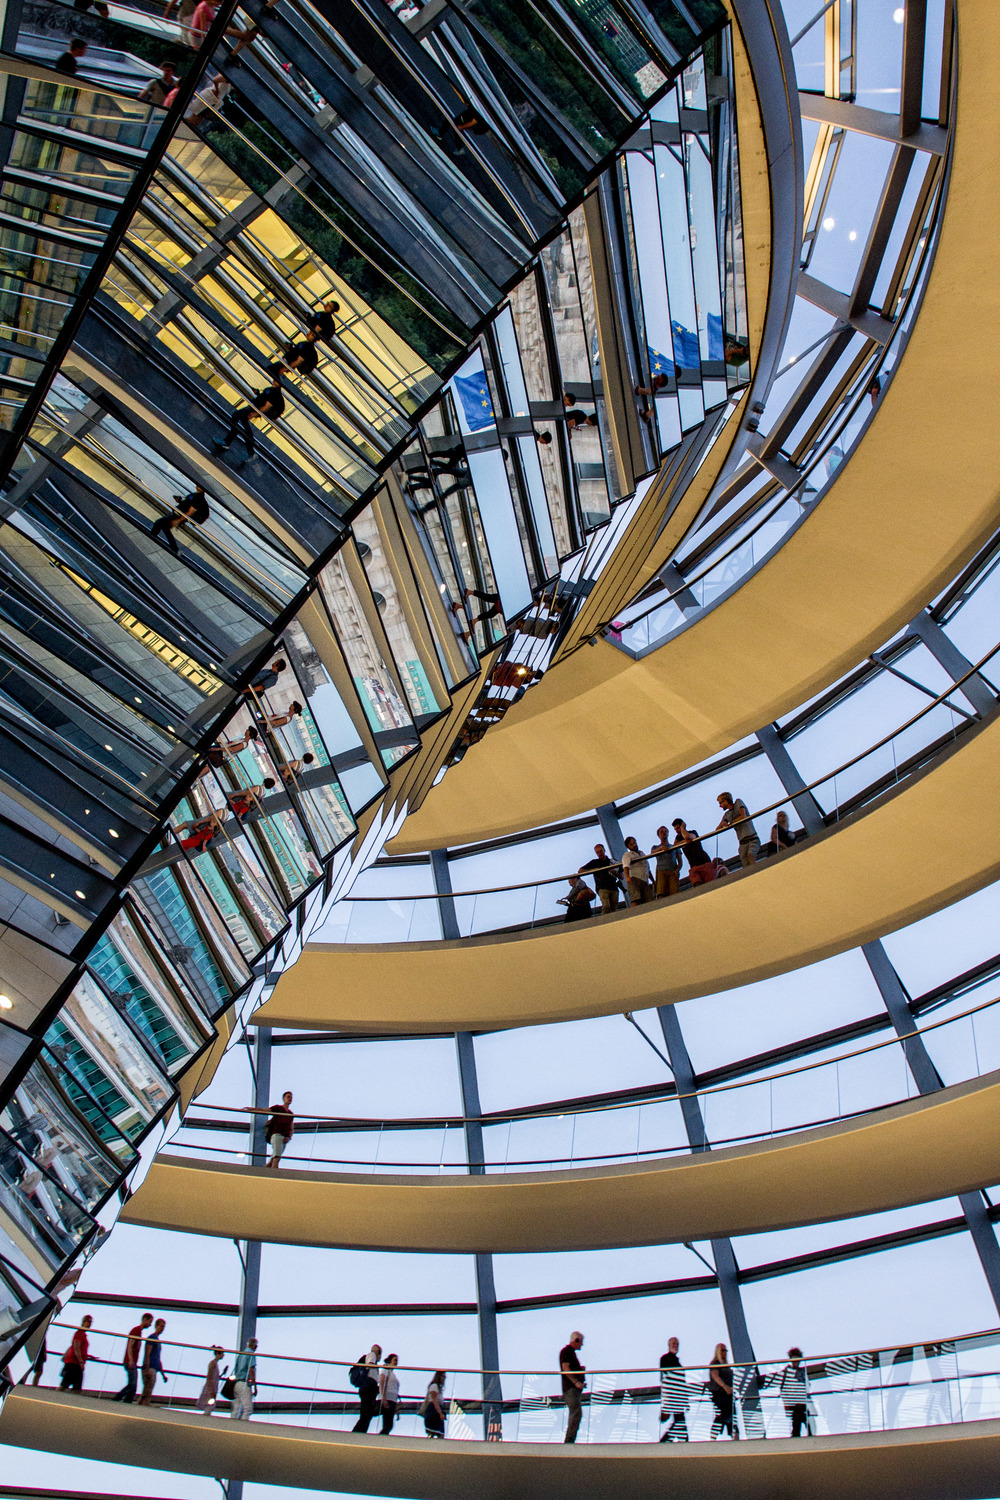 The entire structure of the Reichstag Dome   serves   as a stairway   up to heaven and down to reunification and democracy. Architecture by Norman Foster. Image by John Dawson